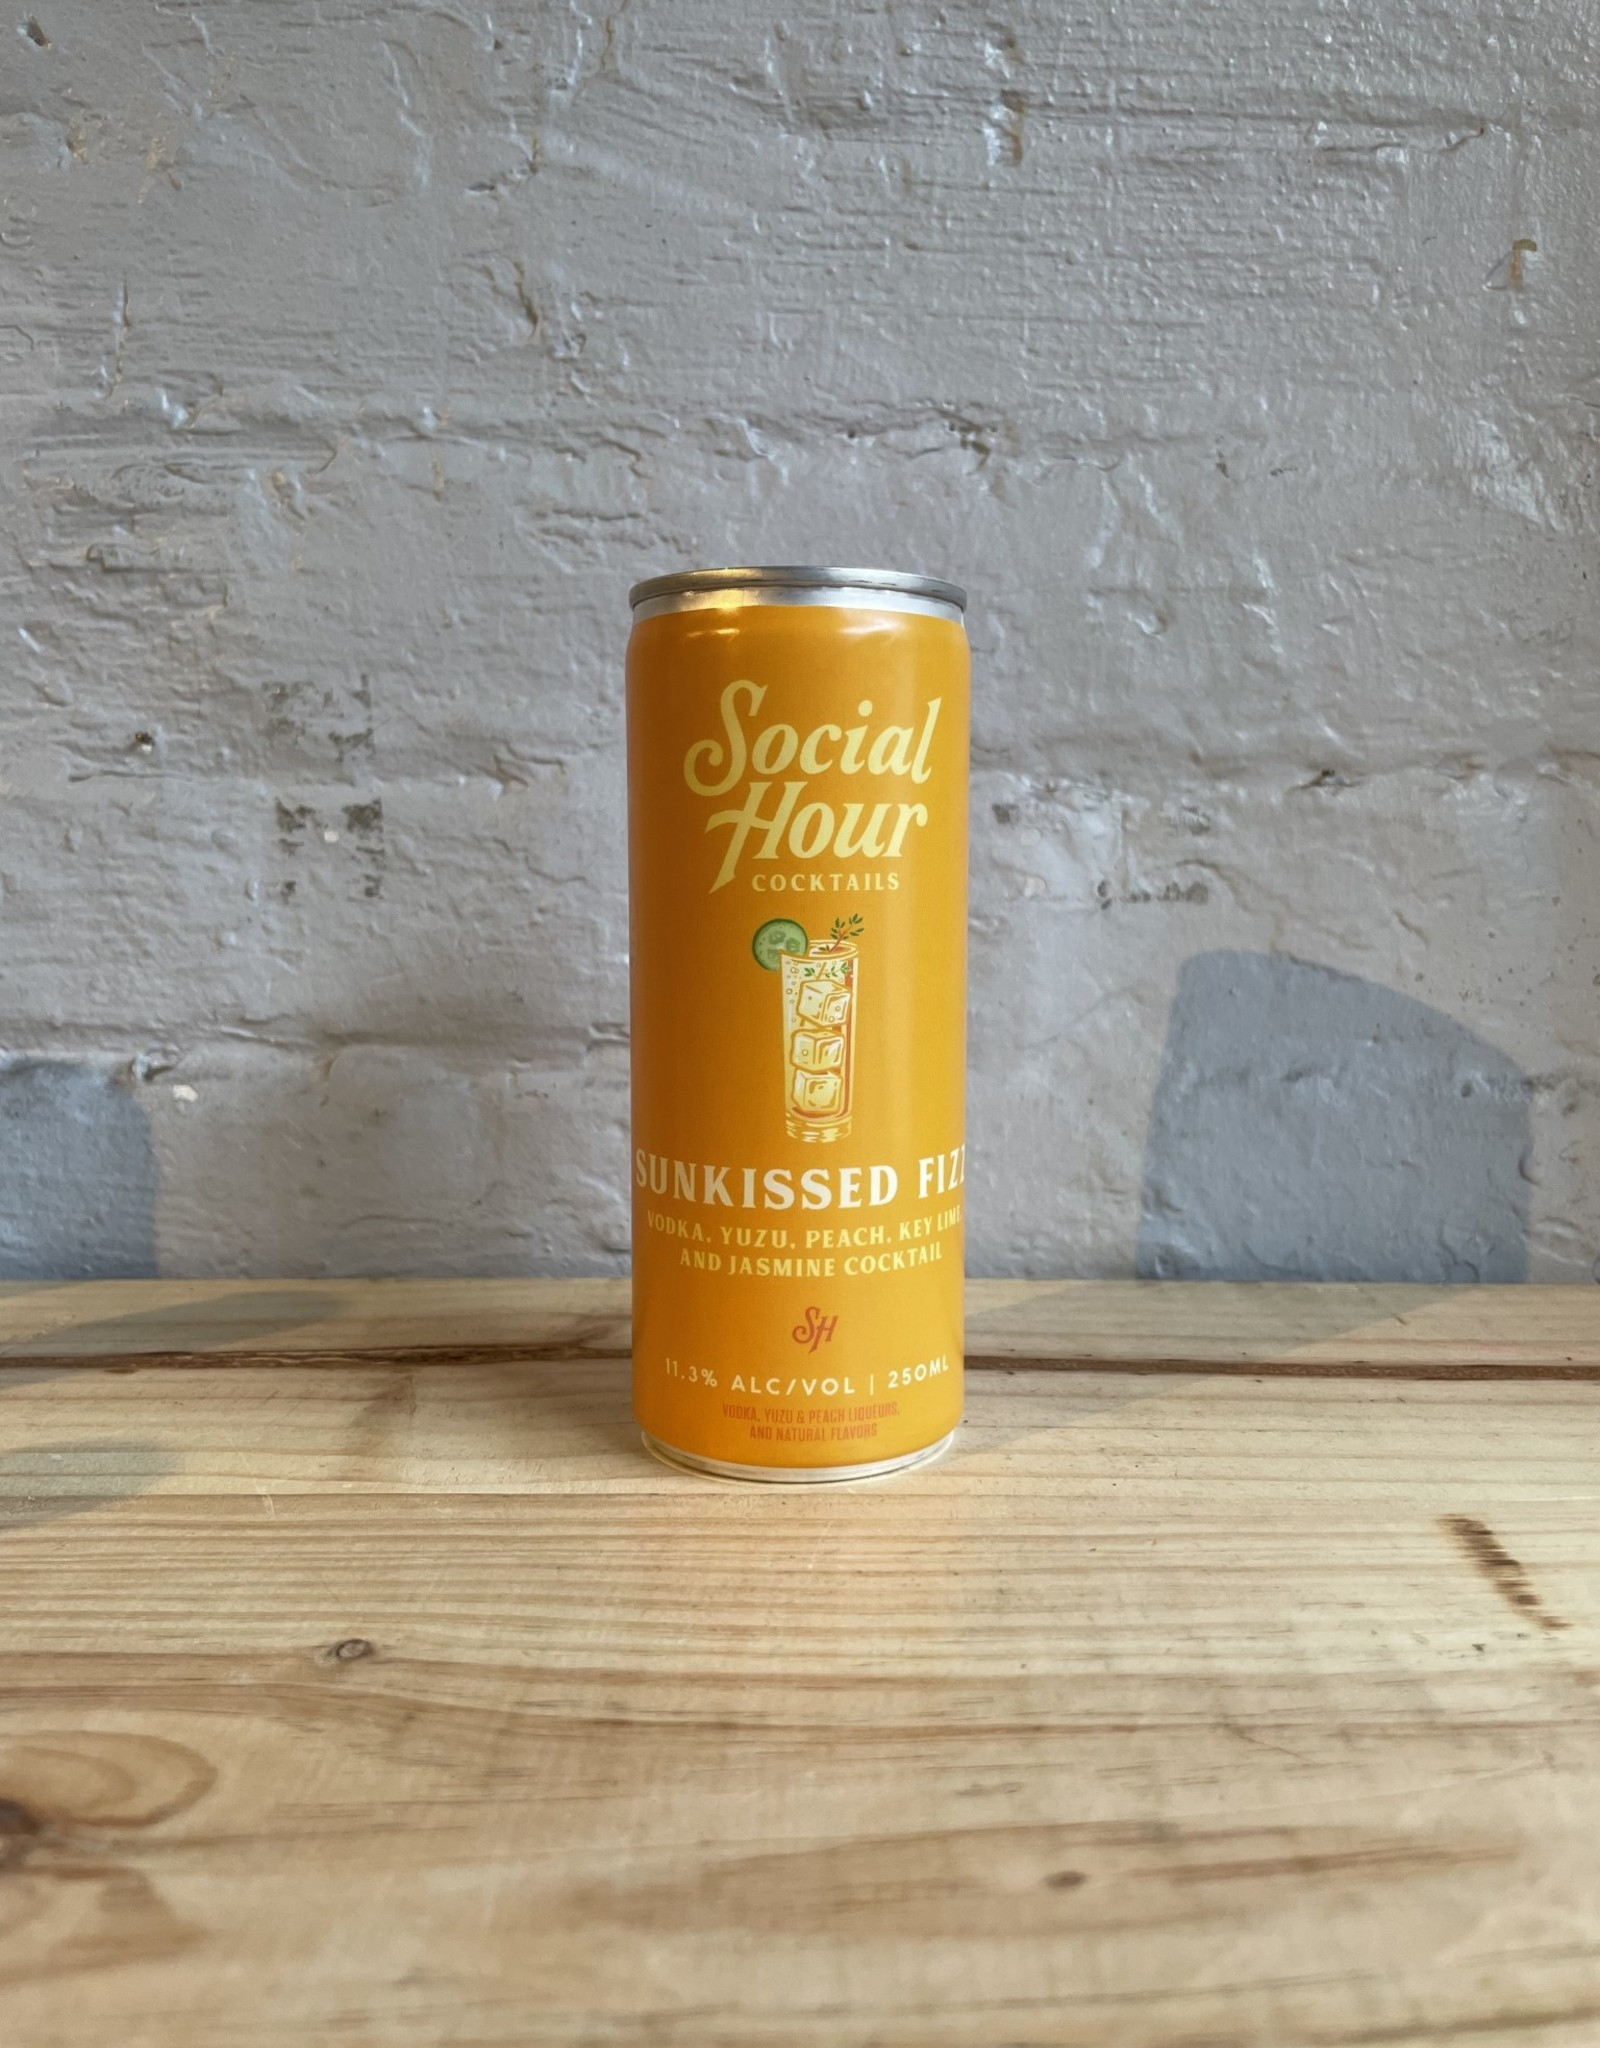 Social Hour Sunkissed Fizz - Brooklyn, NY (250ml)